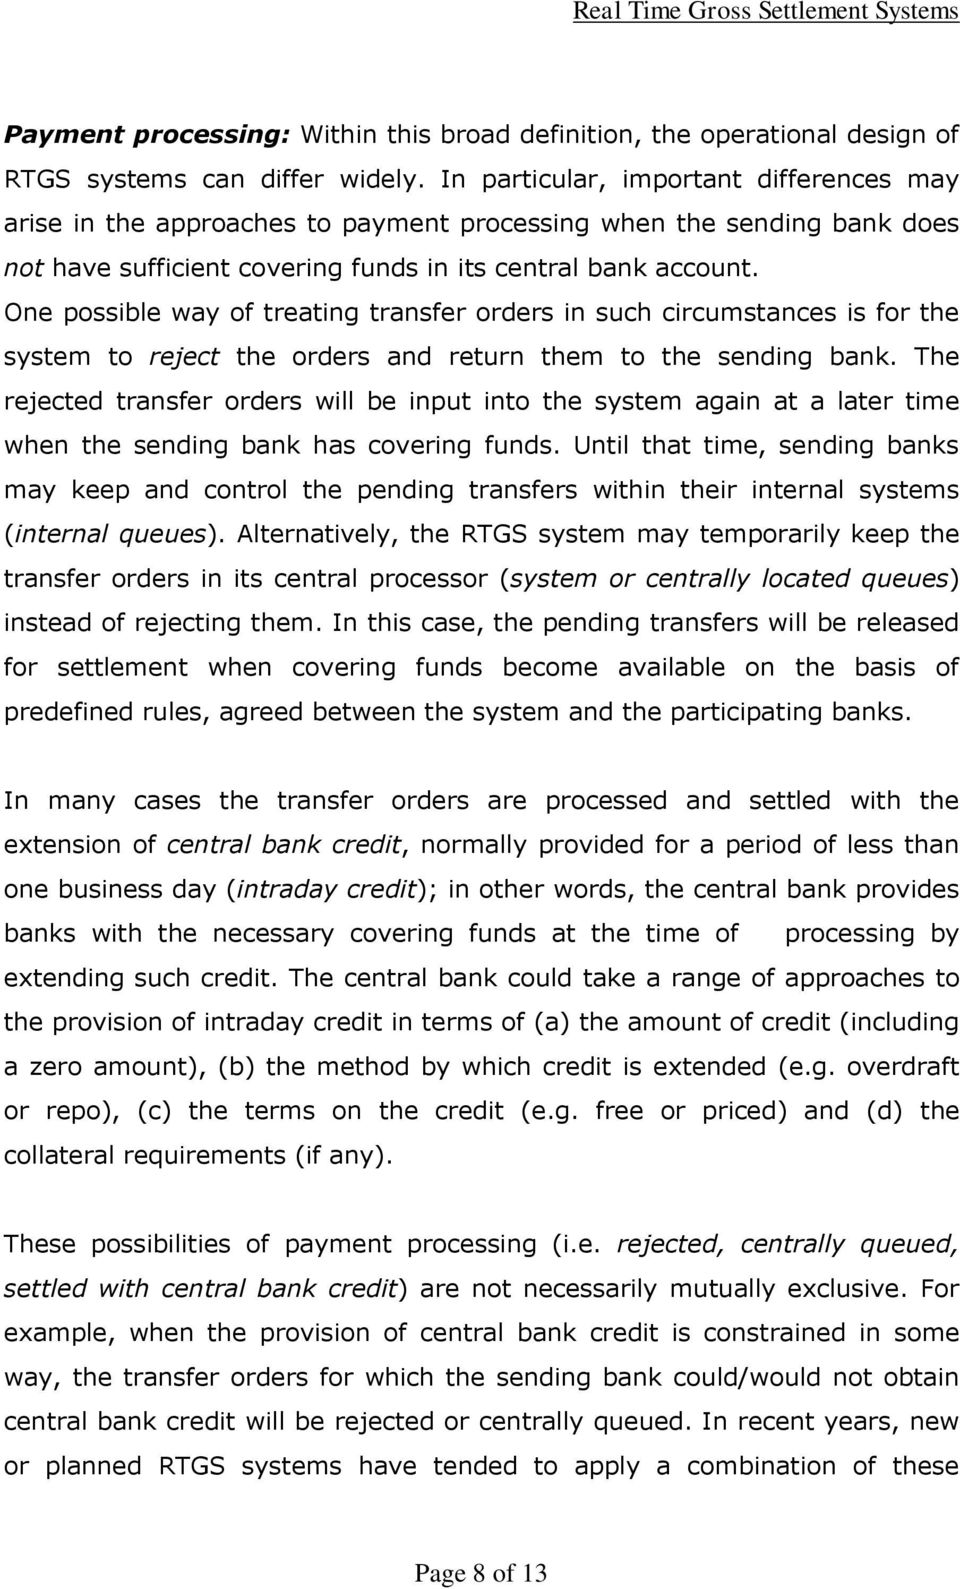 One possible way of treating transfer orders in such circumstances is for the system to reject the orders and return them to the sending bank.